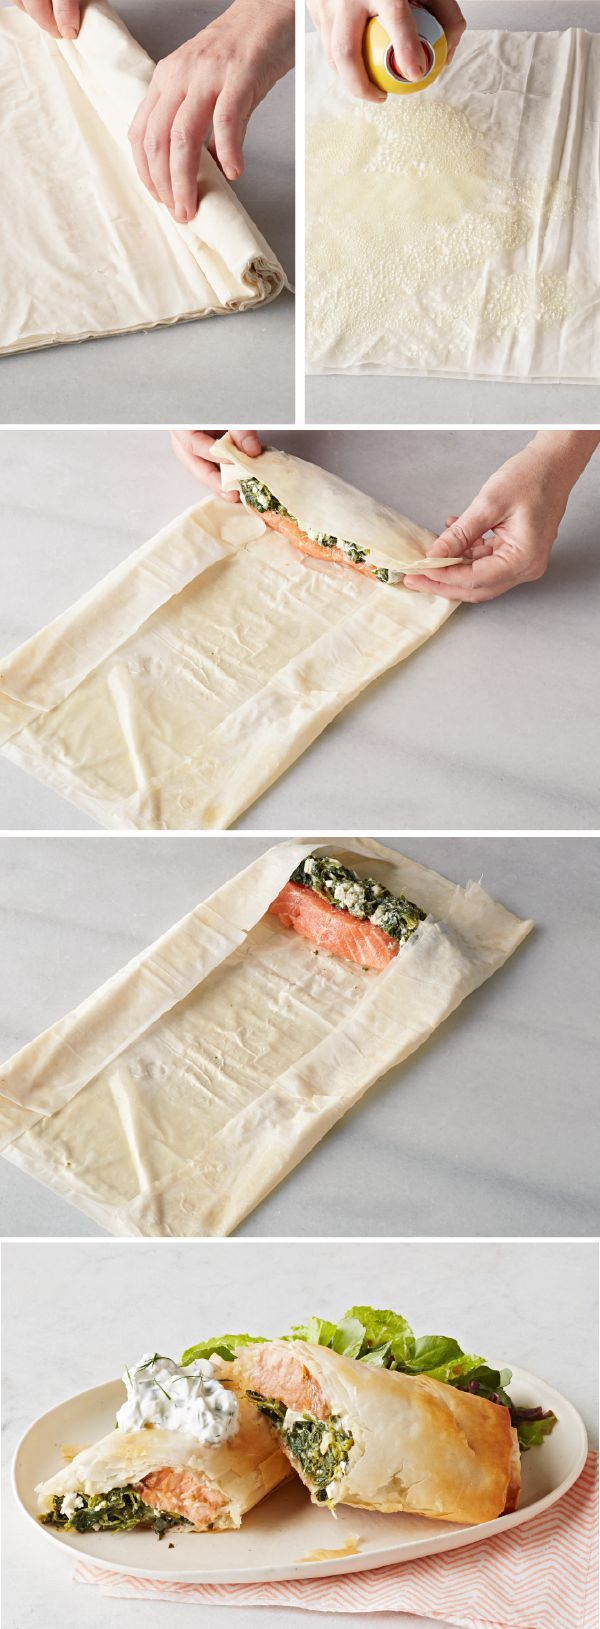 Wrapped Salmon with Spinach & Feta - use olive oil in place of cooking spray